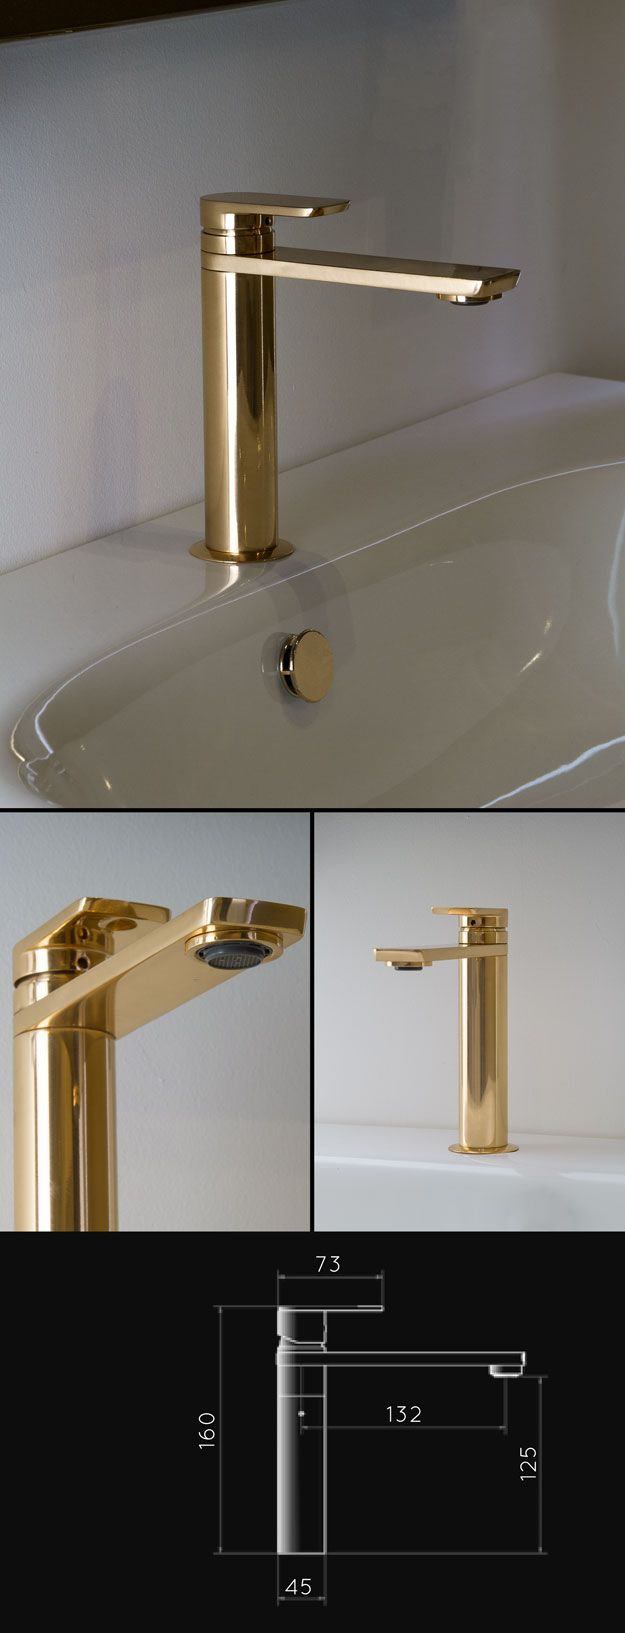 Contemporary bathroom taps uk - Uk Suppliers Of Gold Bathroom Taps In Latest Contemporary European Styling These Gold Taps Are A Lovely Design Alternative To Chrome Stainless Steel